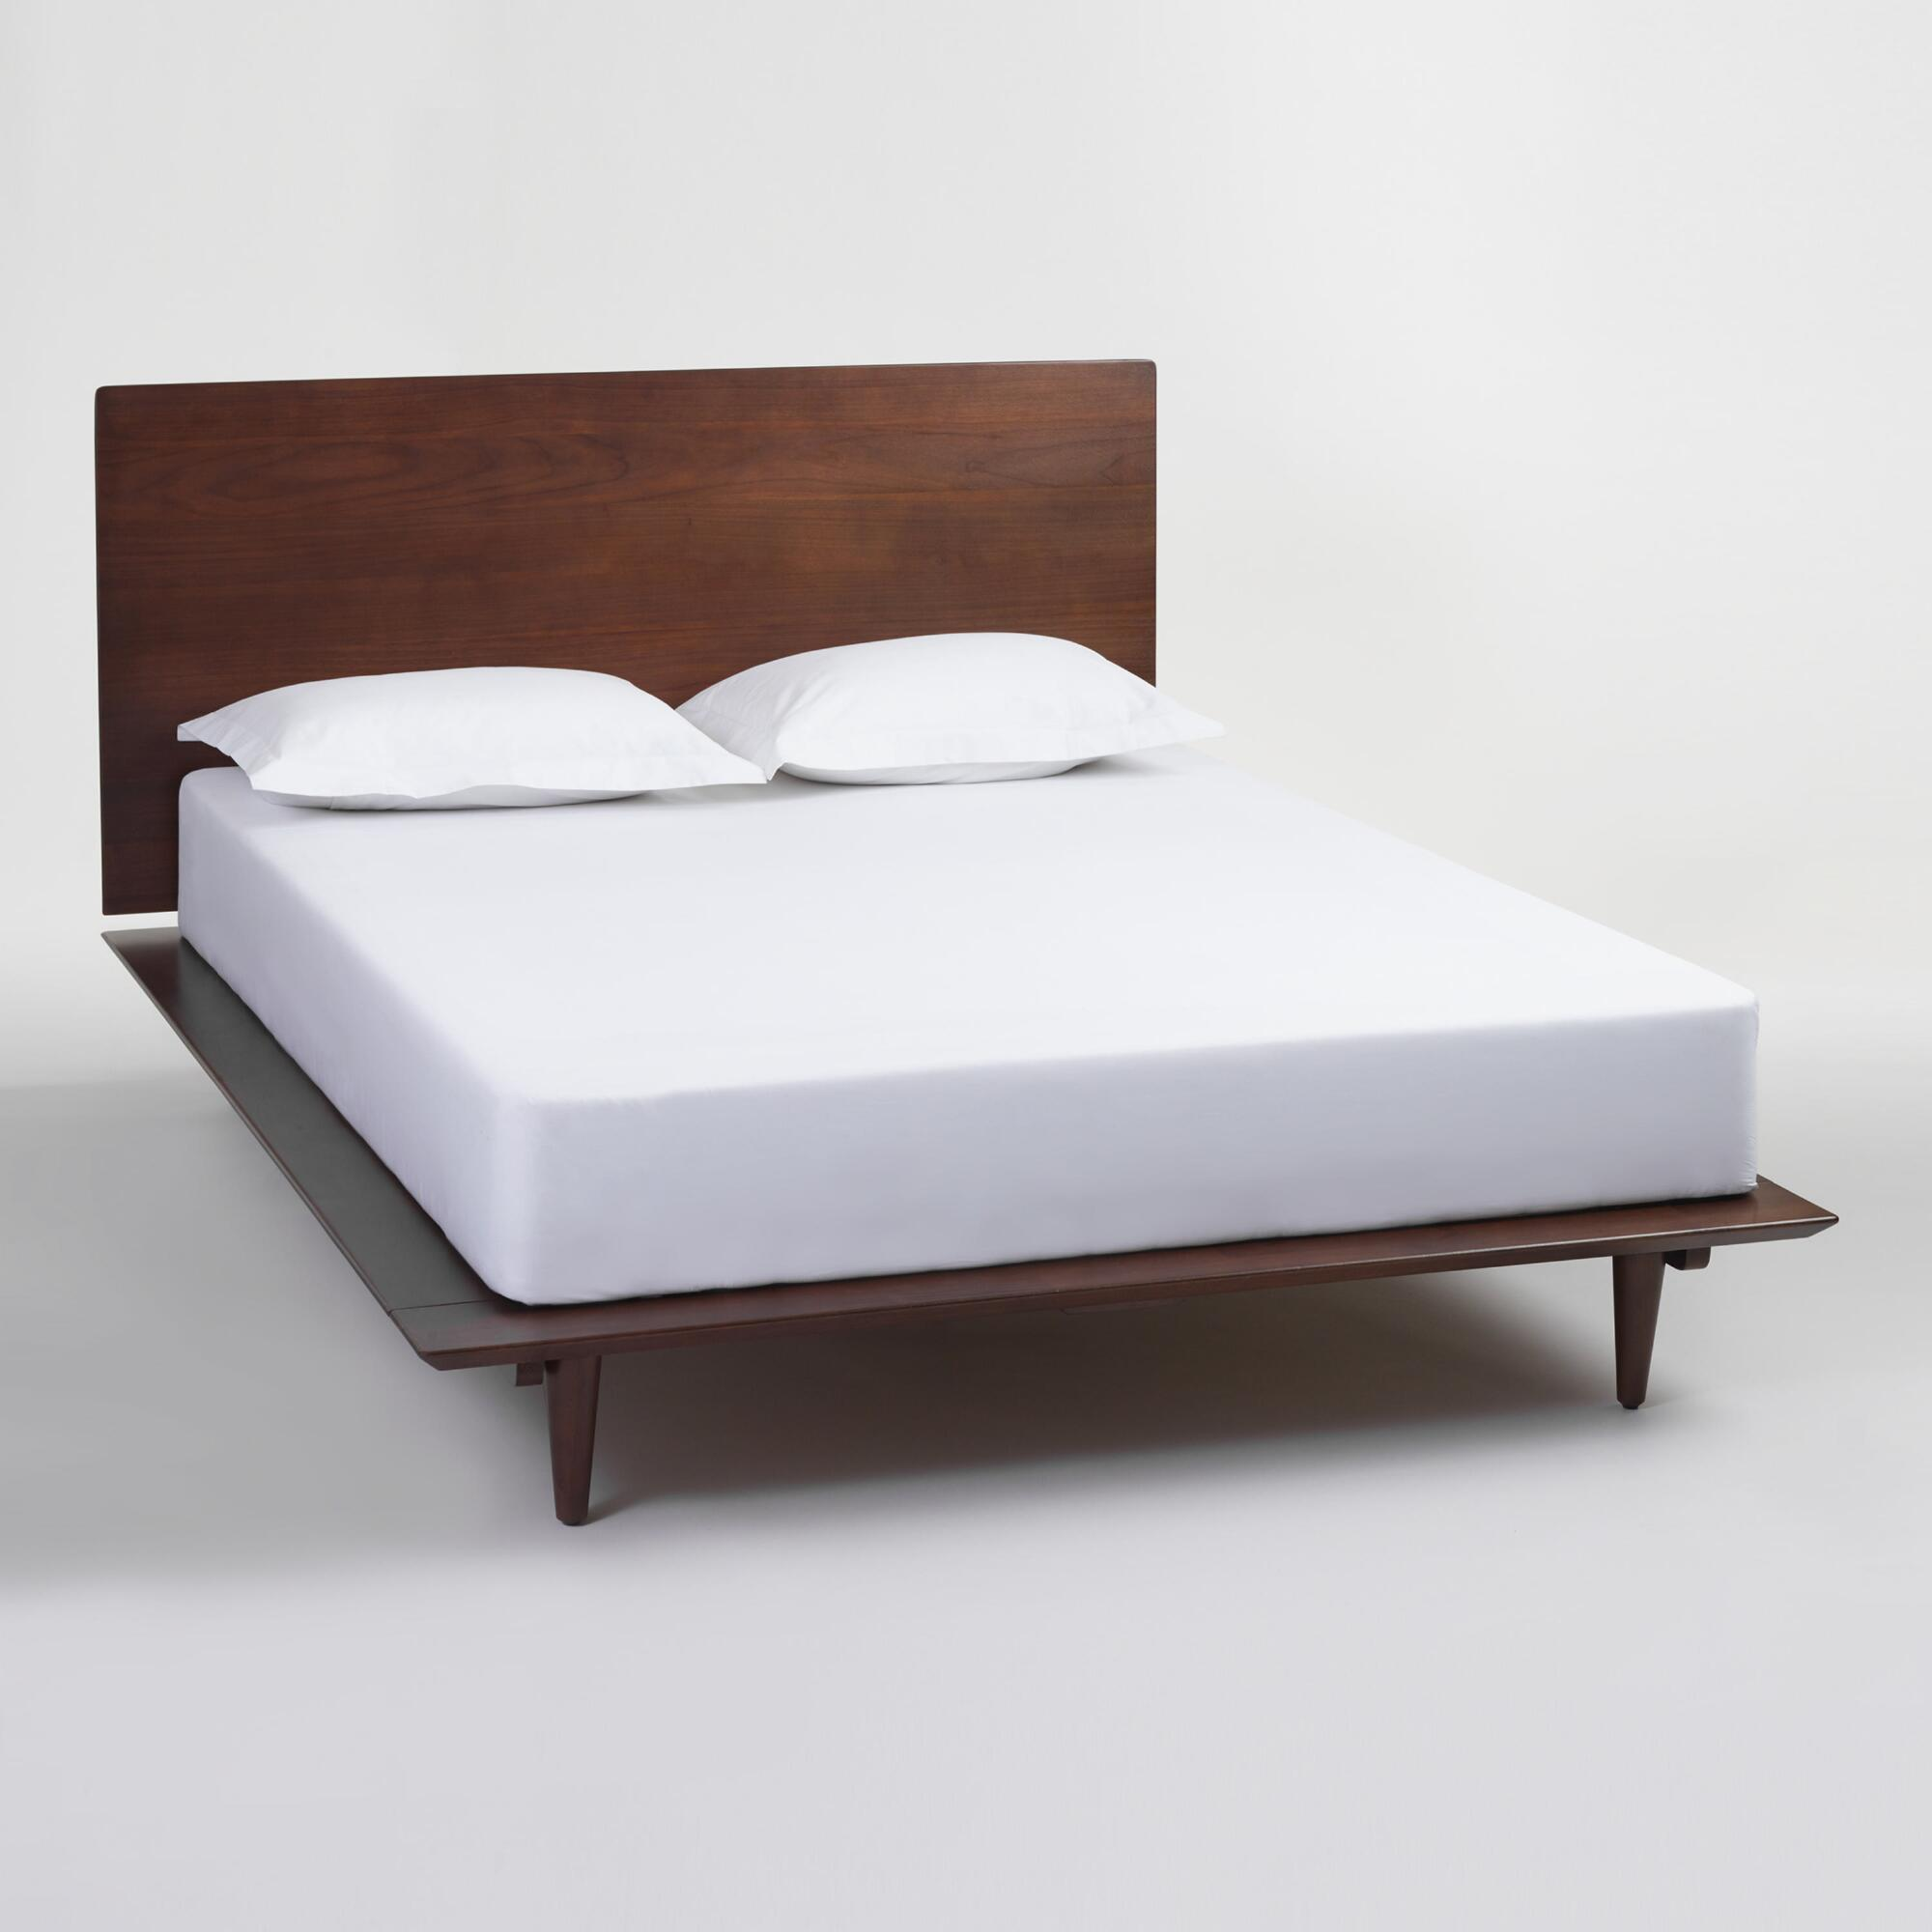 affordable platform beds frames  headboards  world market - walnut brown wood barrett queen bed